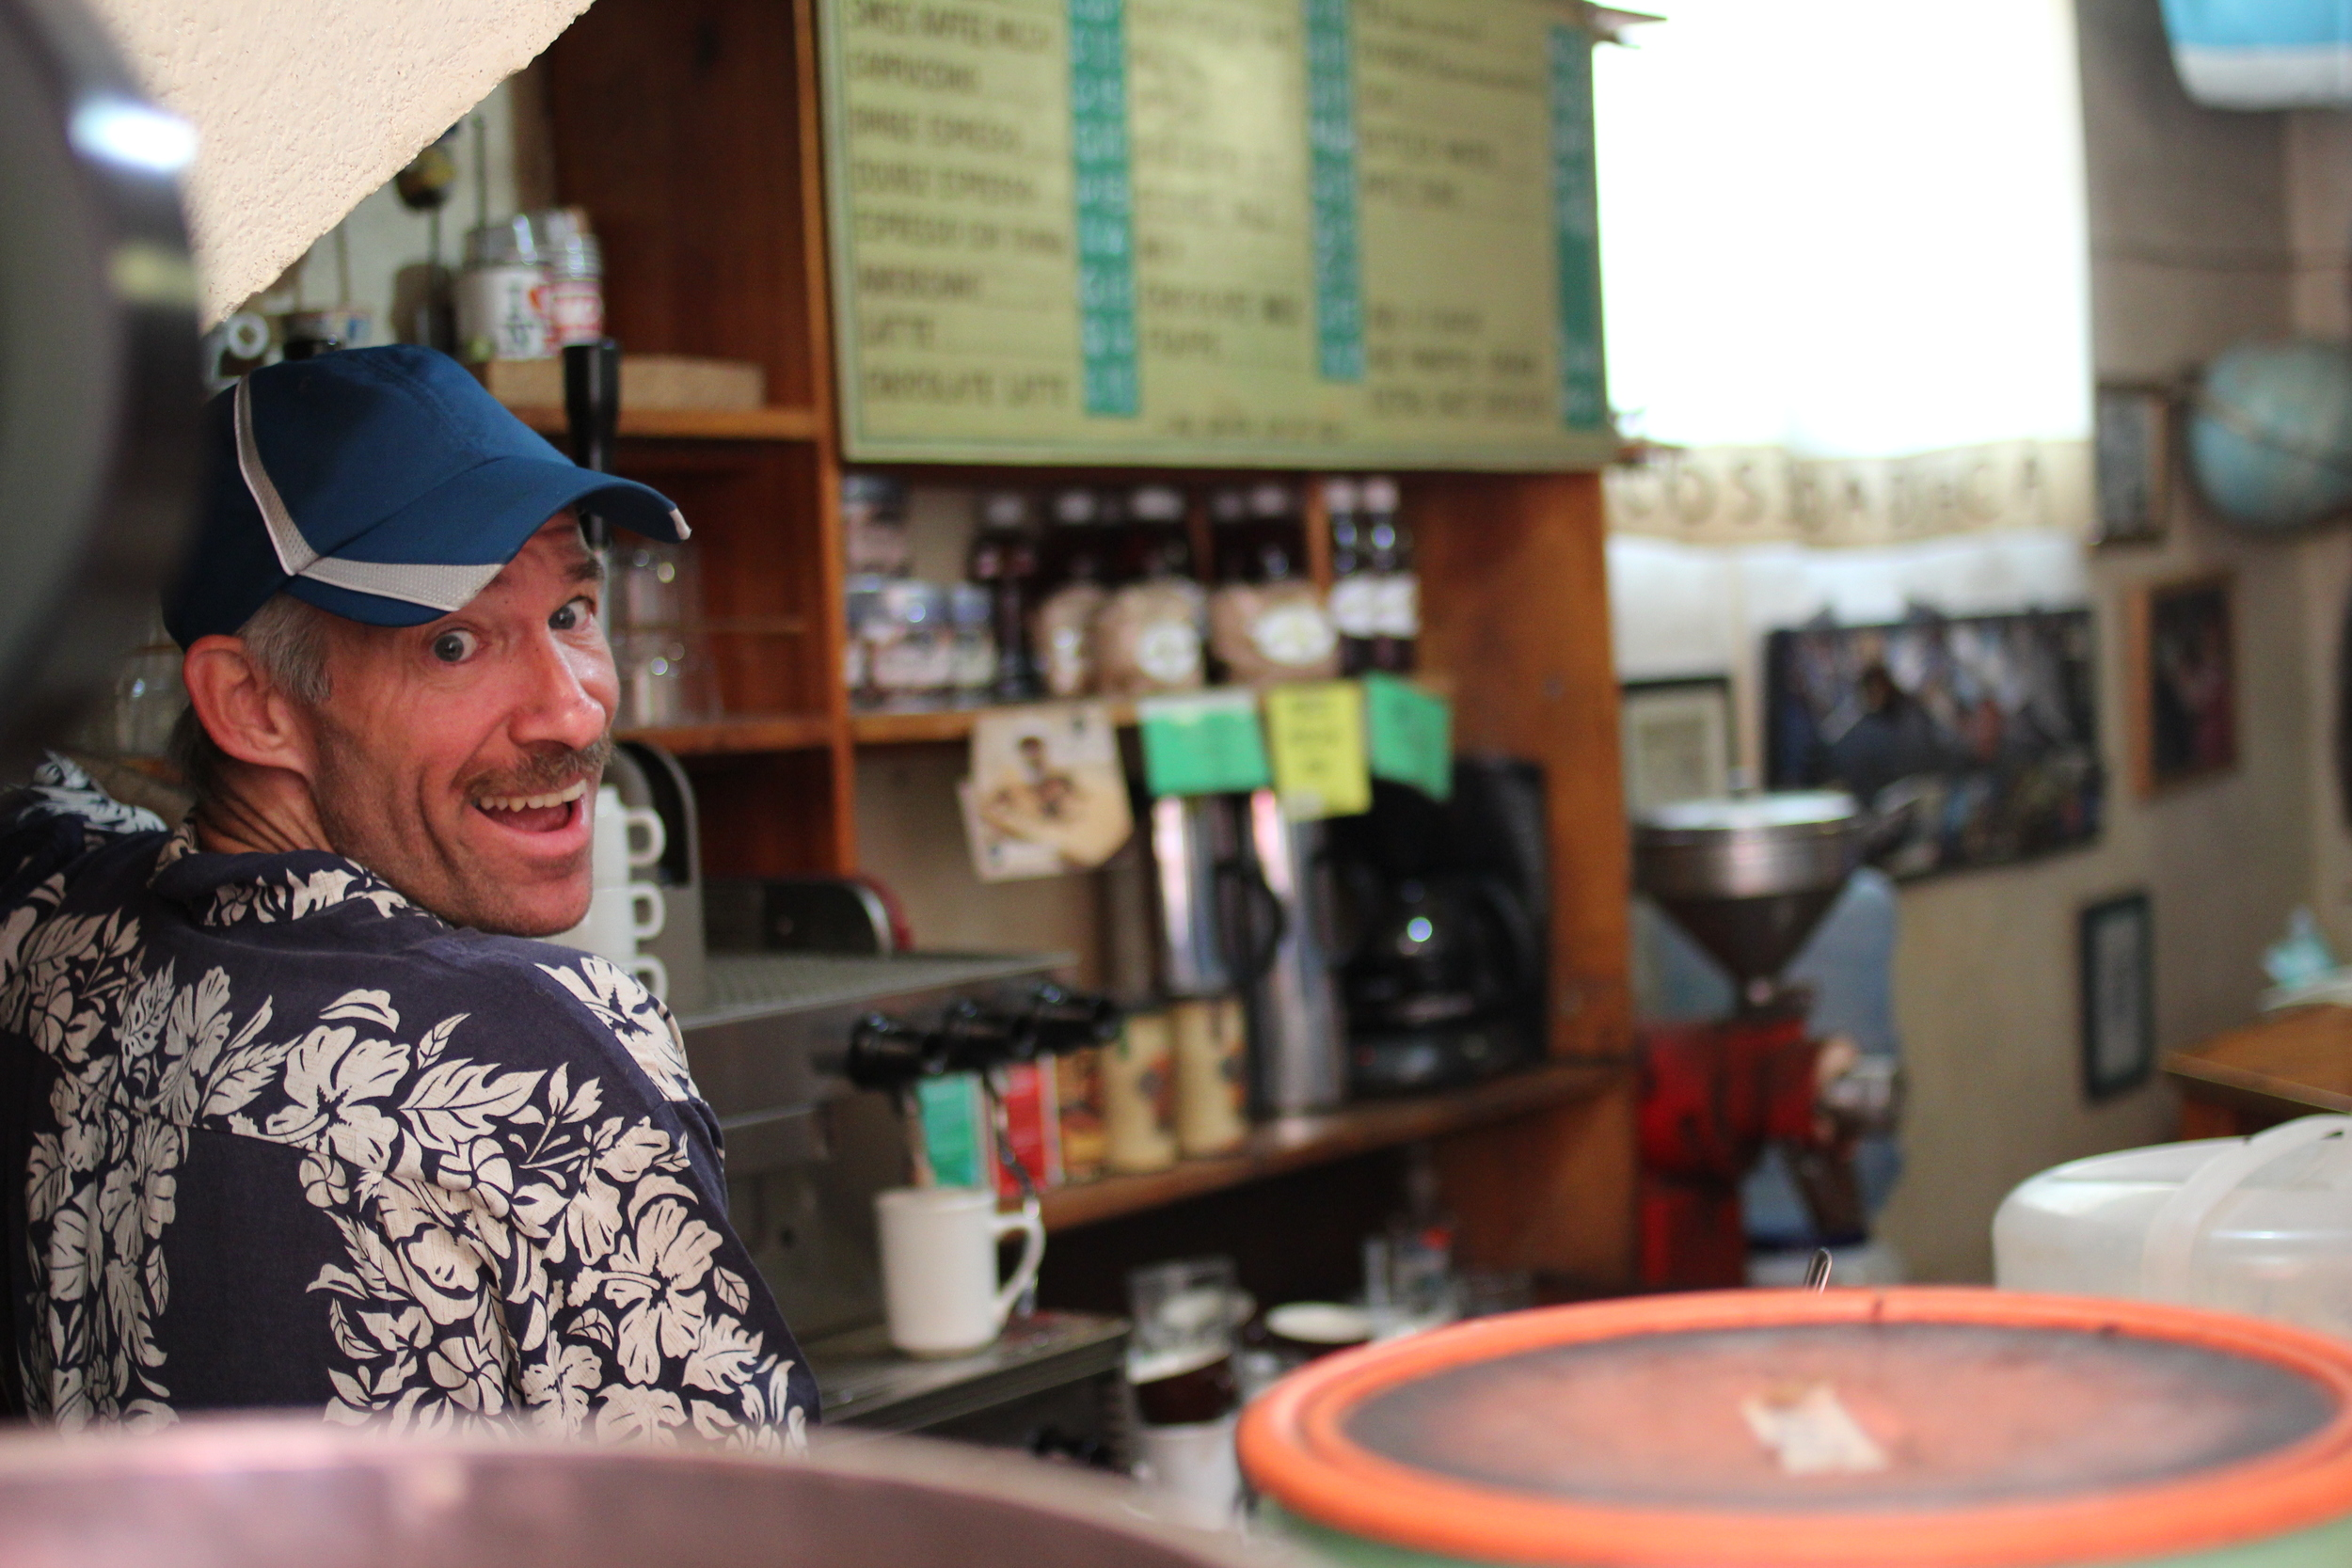 Mike is the one-man-show proprietor of Crossroads Cafe, and a source of encouragement and answers for many a visitor. He knows more about coffee than anyone we've ever met.